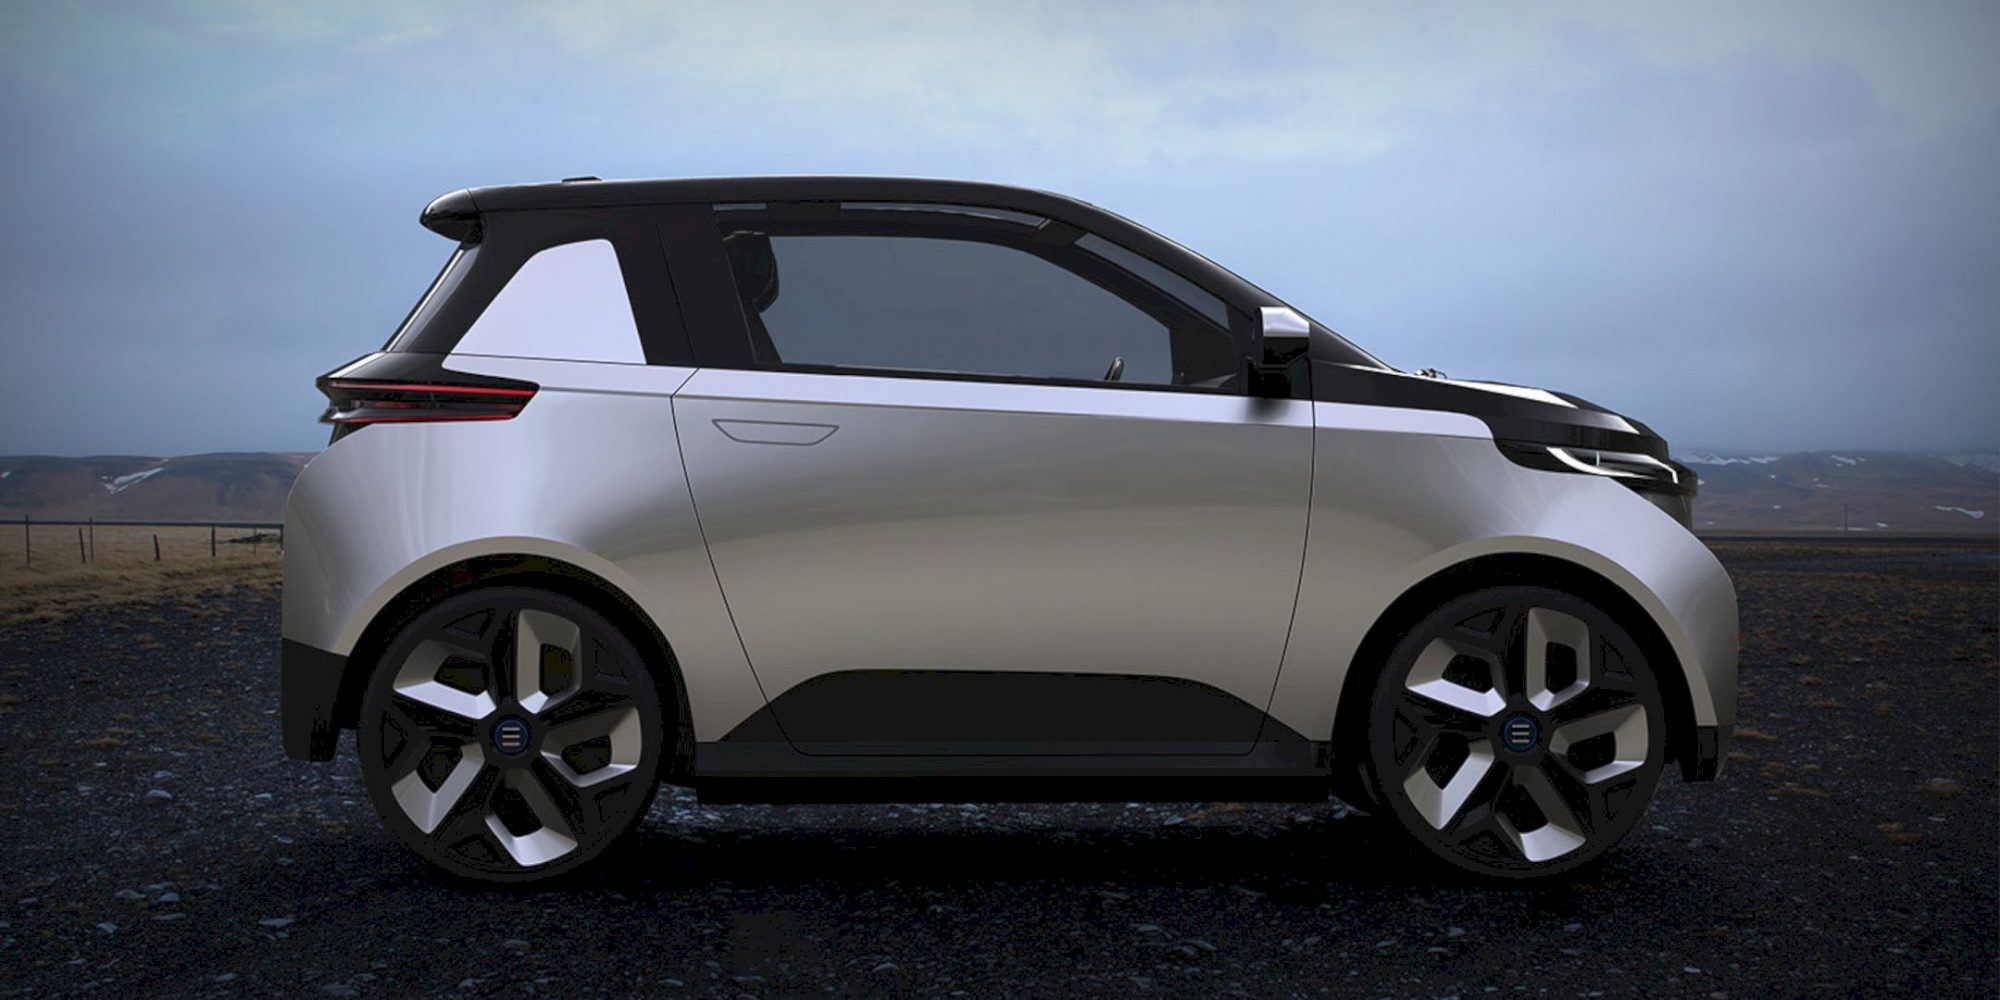 EONE: A Two-Person Electric Car Concept with Uncomplicated Design